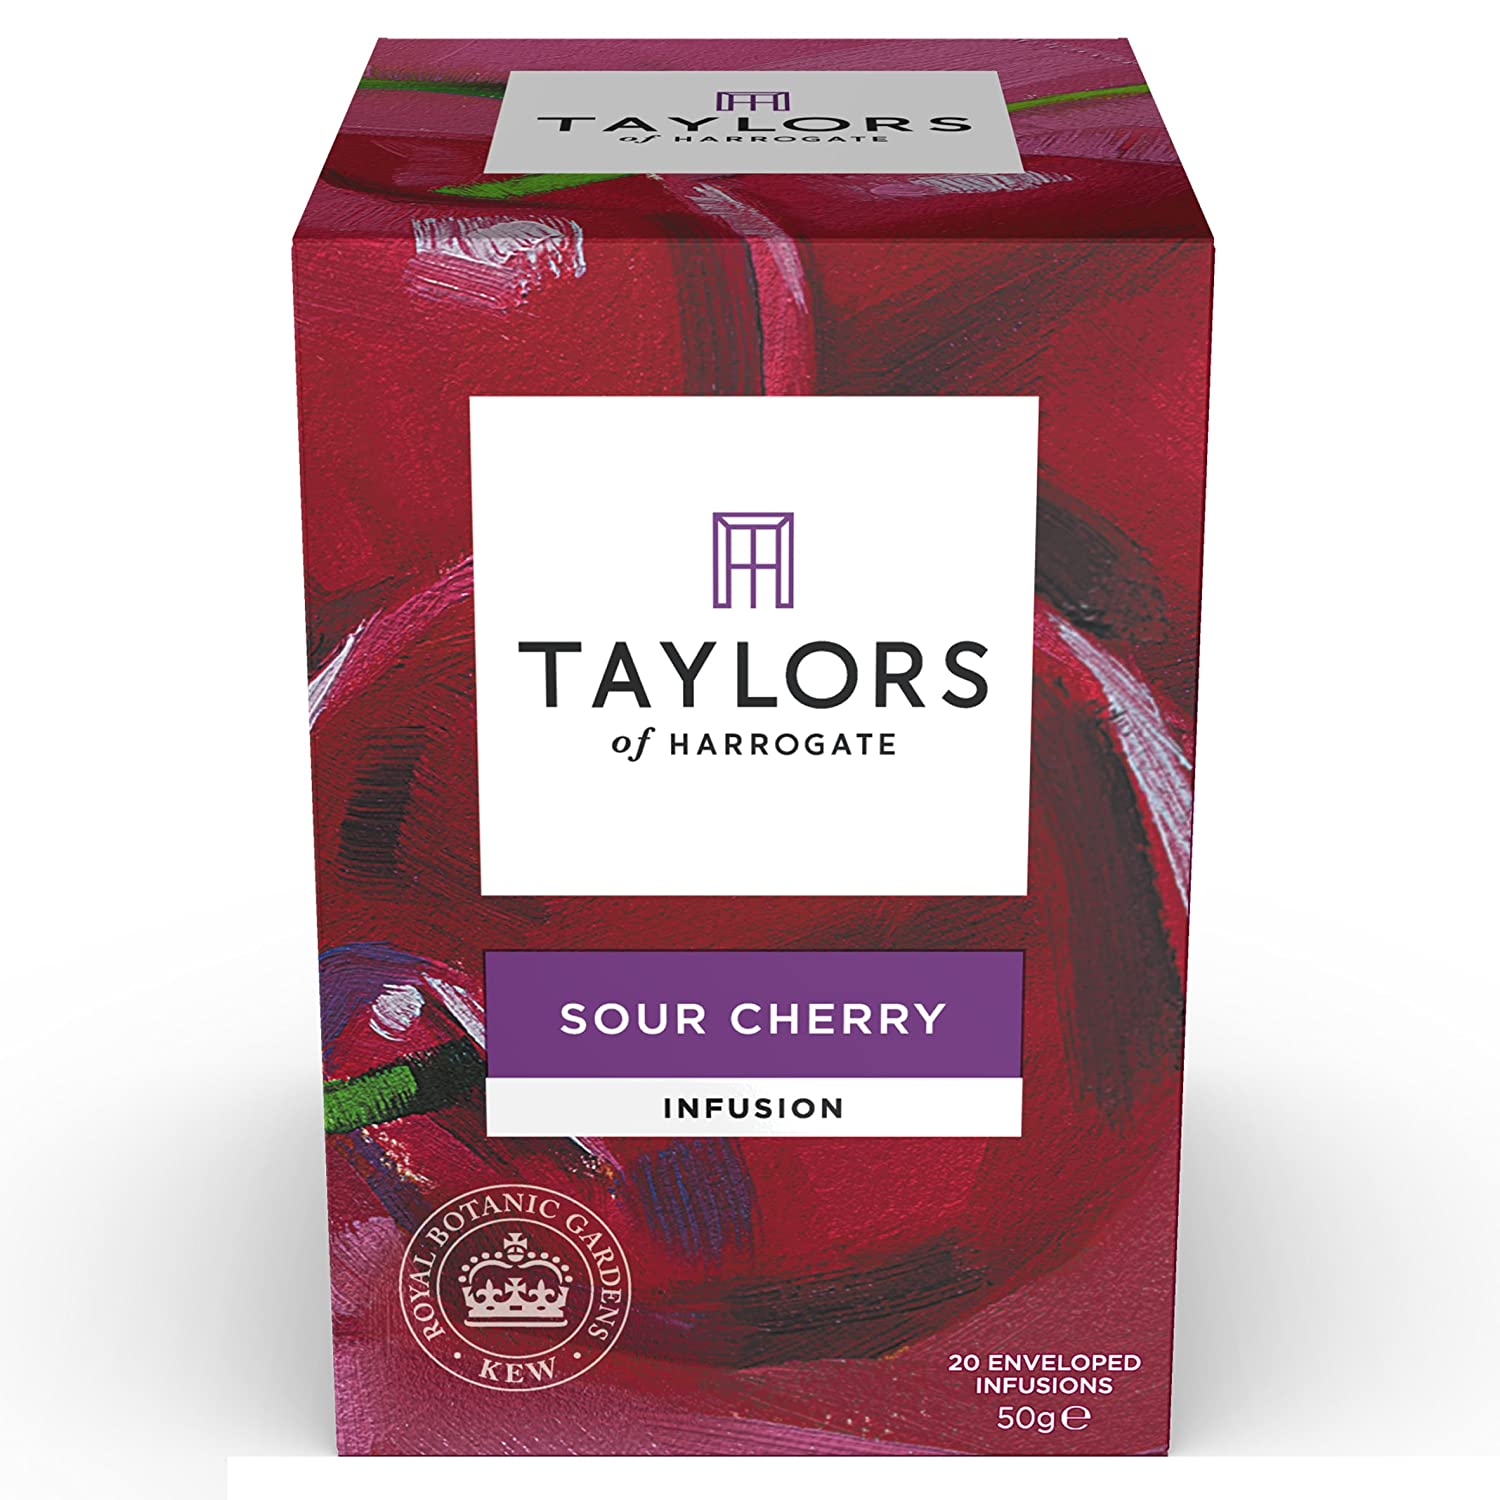 Amazoncom Taylors Of Harrogate Sour Cherry Infusion, 20 Teabags Grocery